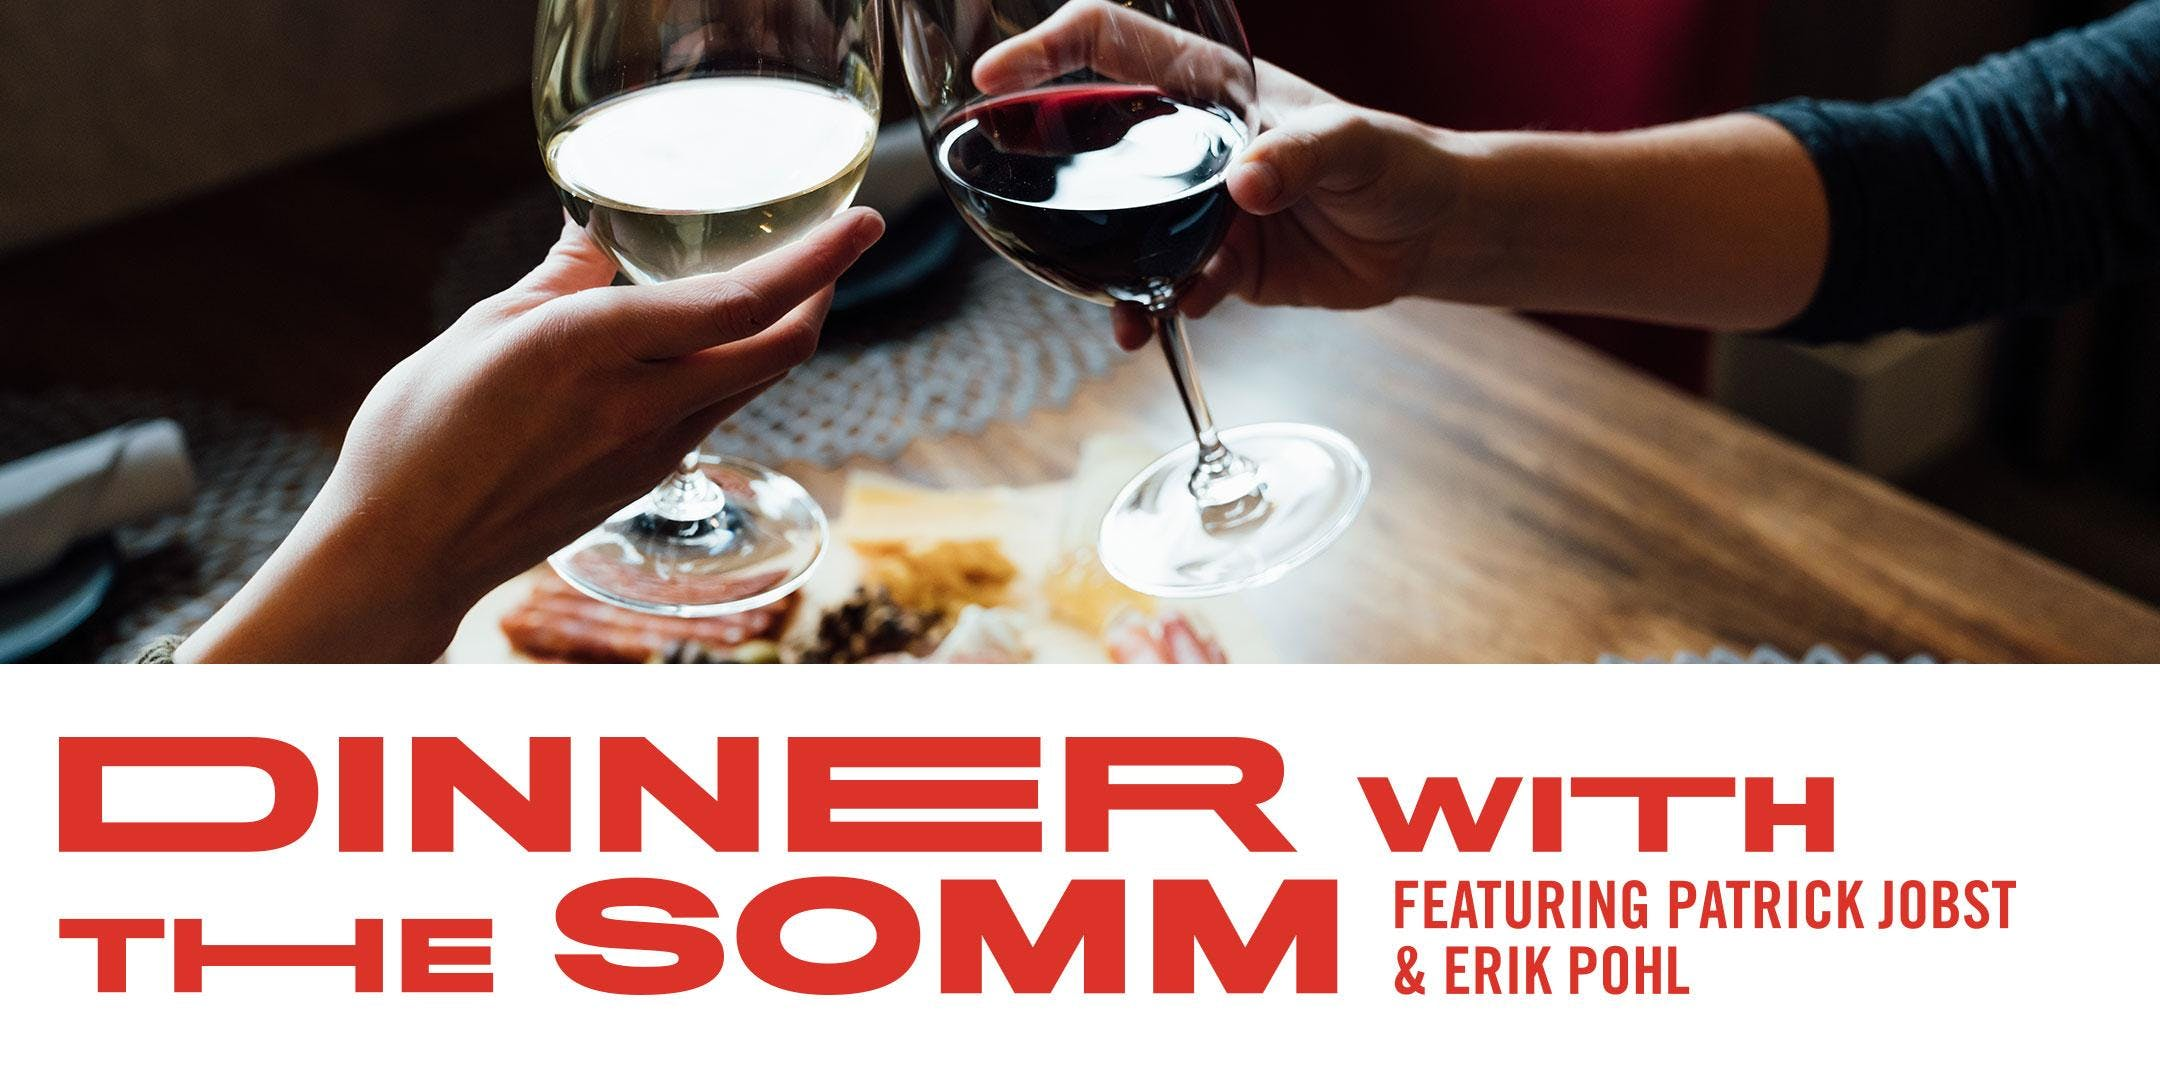 Dinner with the Somm, Patrick Jobst, Erik Pohl, & Chef Luke VerHulst